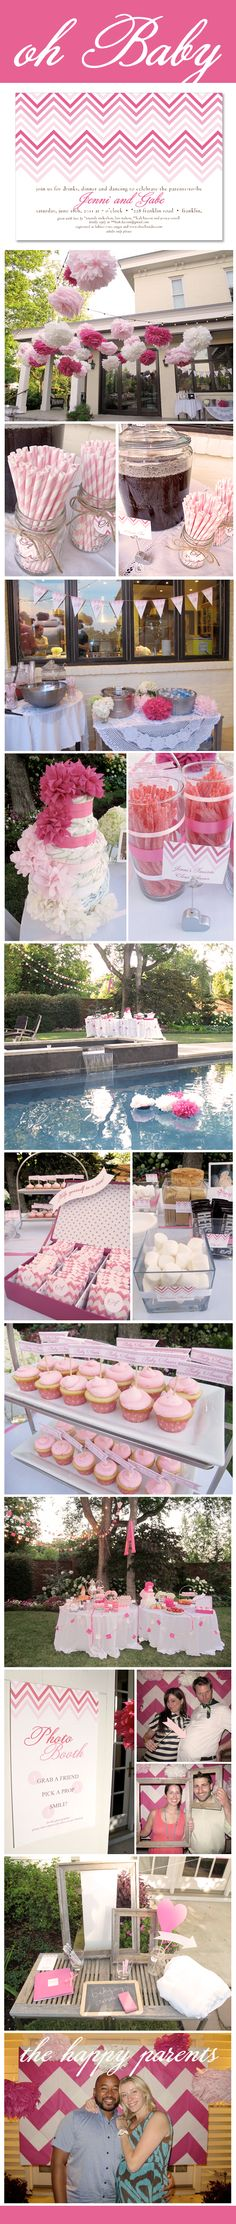 i hope my baby shower will be like this. a woman can dream.